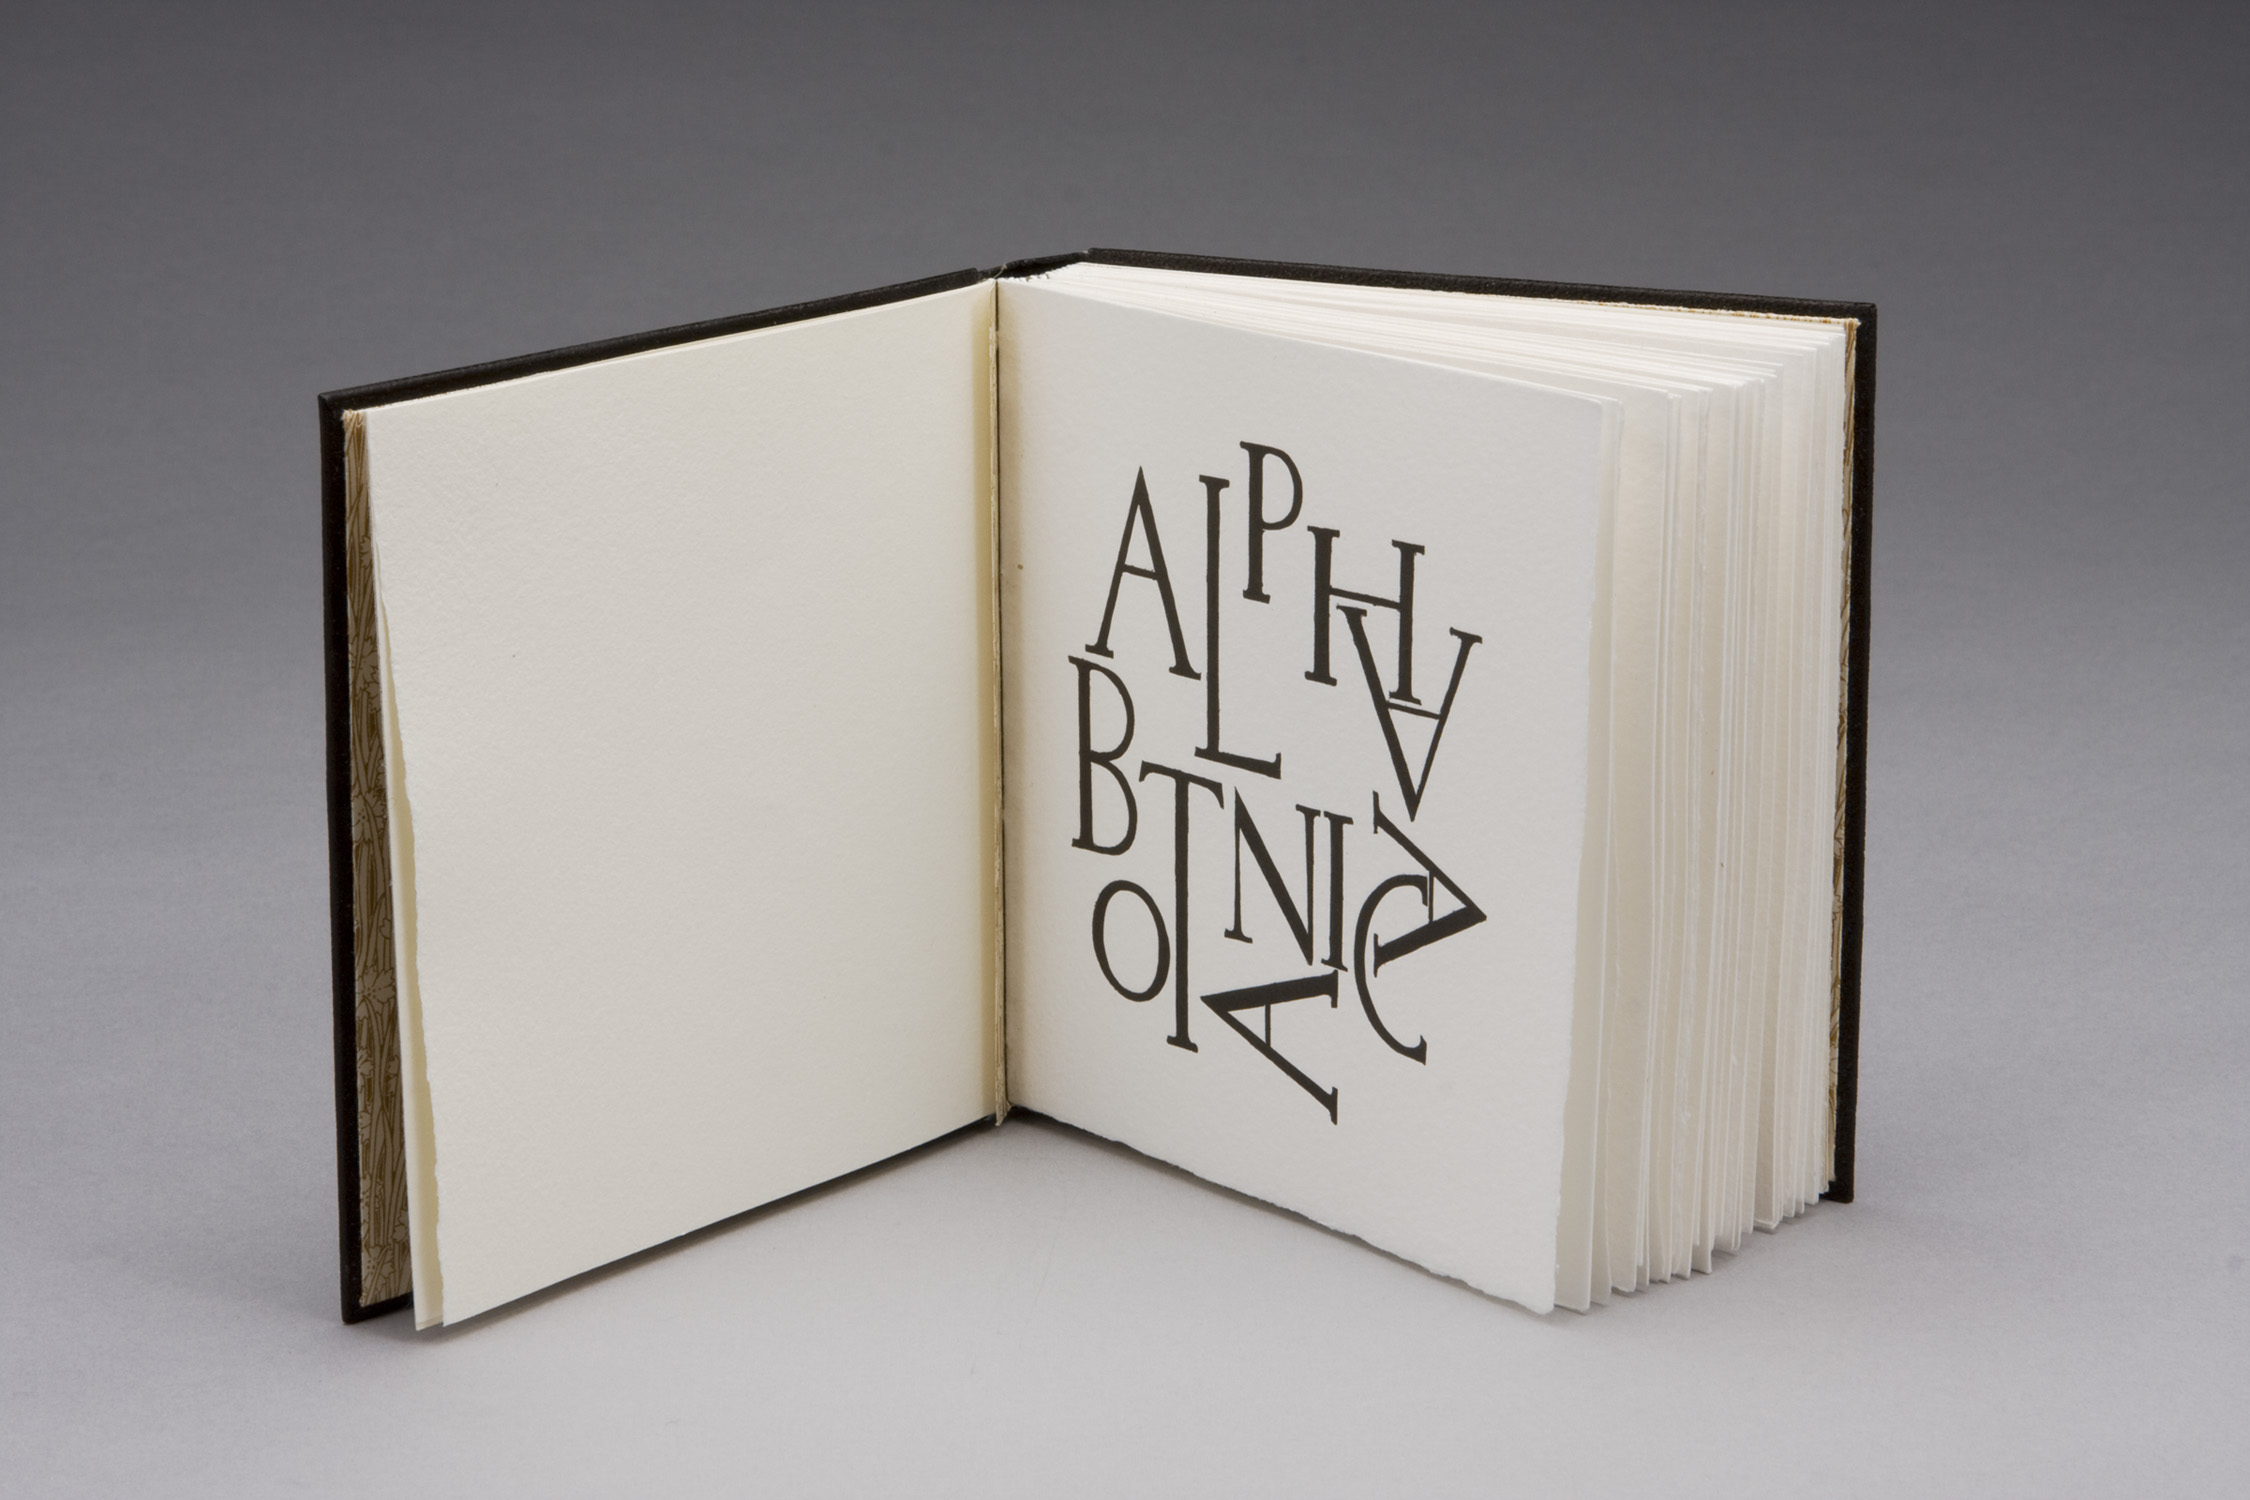 Sarah Horowitz and Claudia Cohen   Alpha botanica (Roman and Hebrew abecedaruim of engraved botanical capitals), 2007  51 wood engravings with letterpress on Velke Losiny paper in a leather binding with gold foil stamping